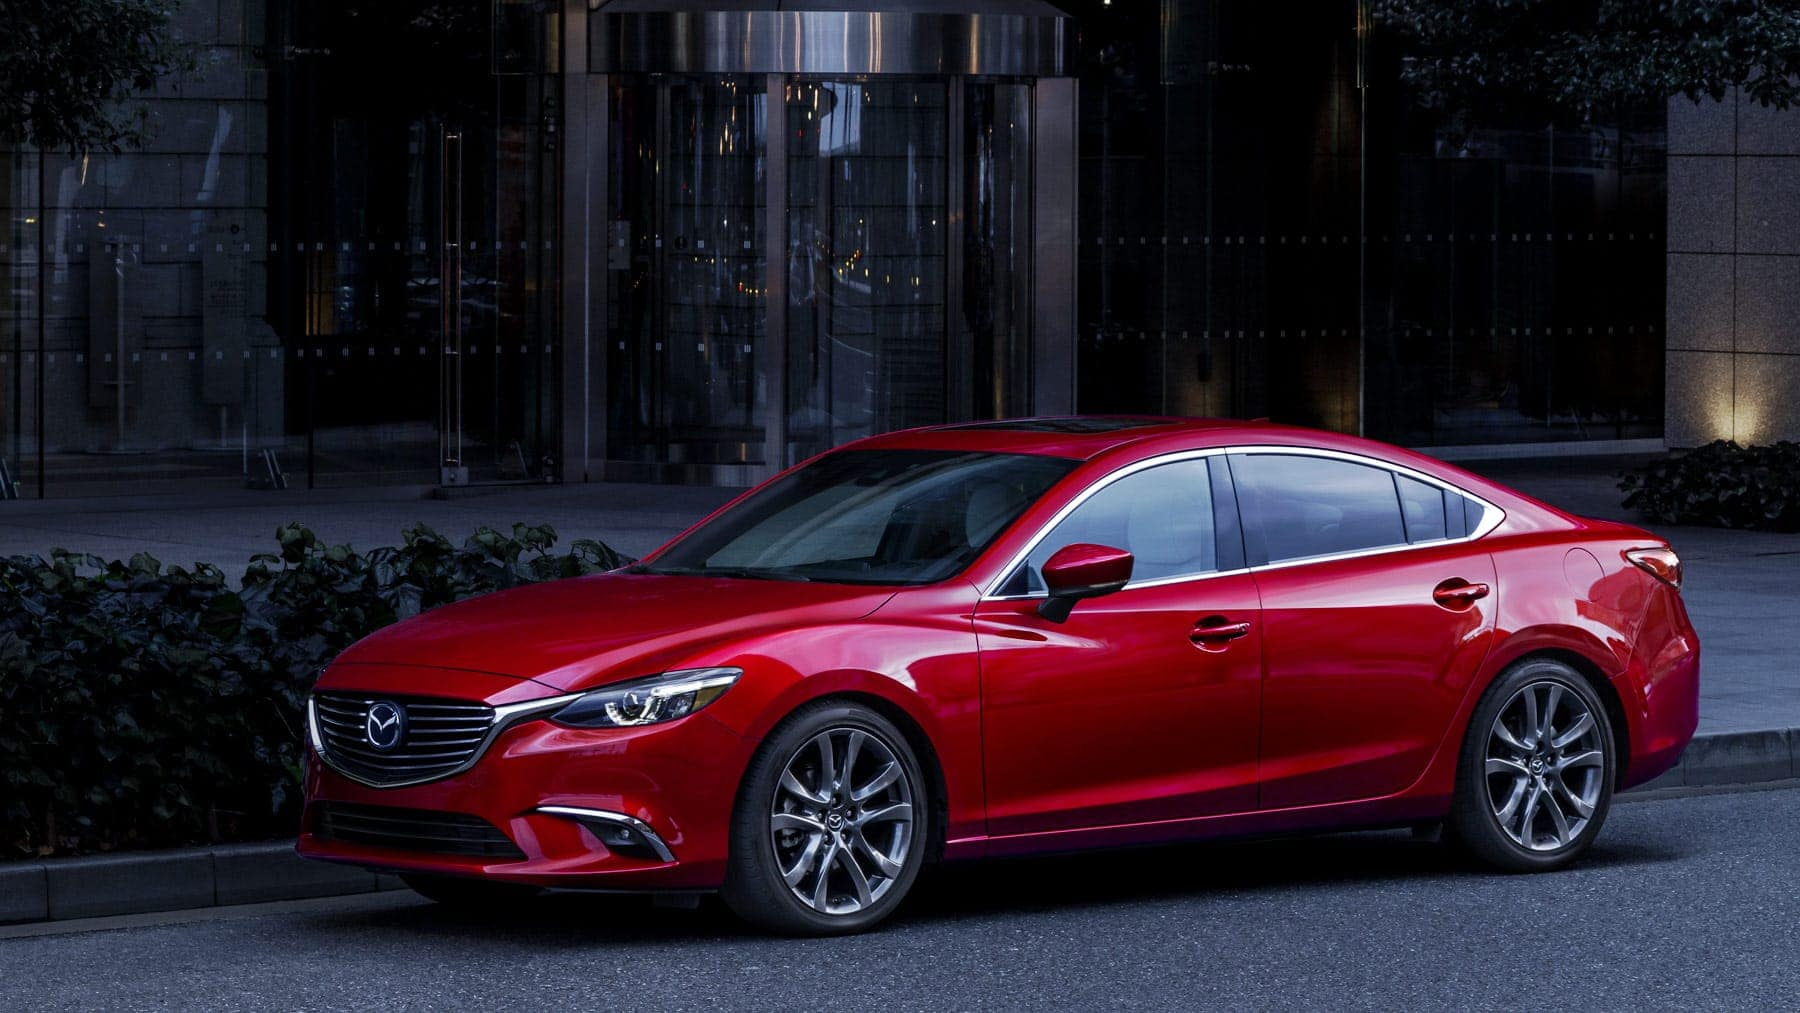 2017-m6g-soulred exterior Mazda6-gallery-09